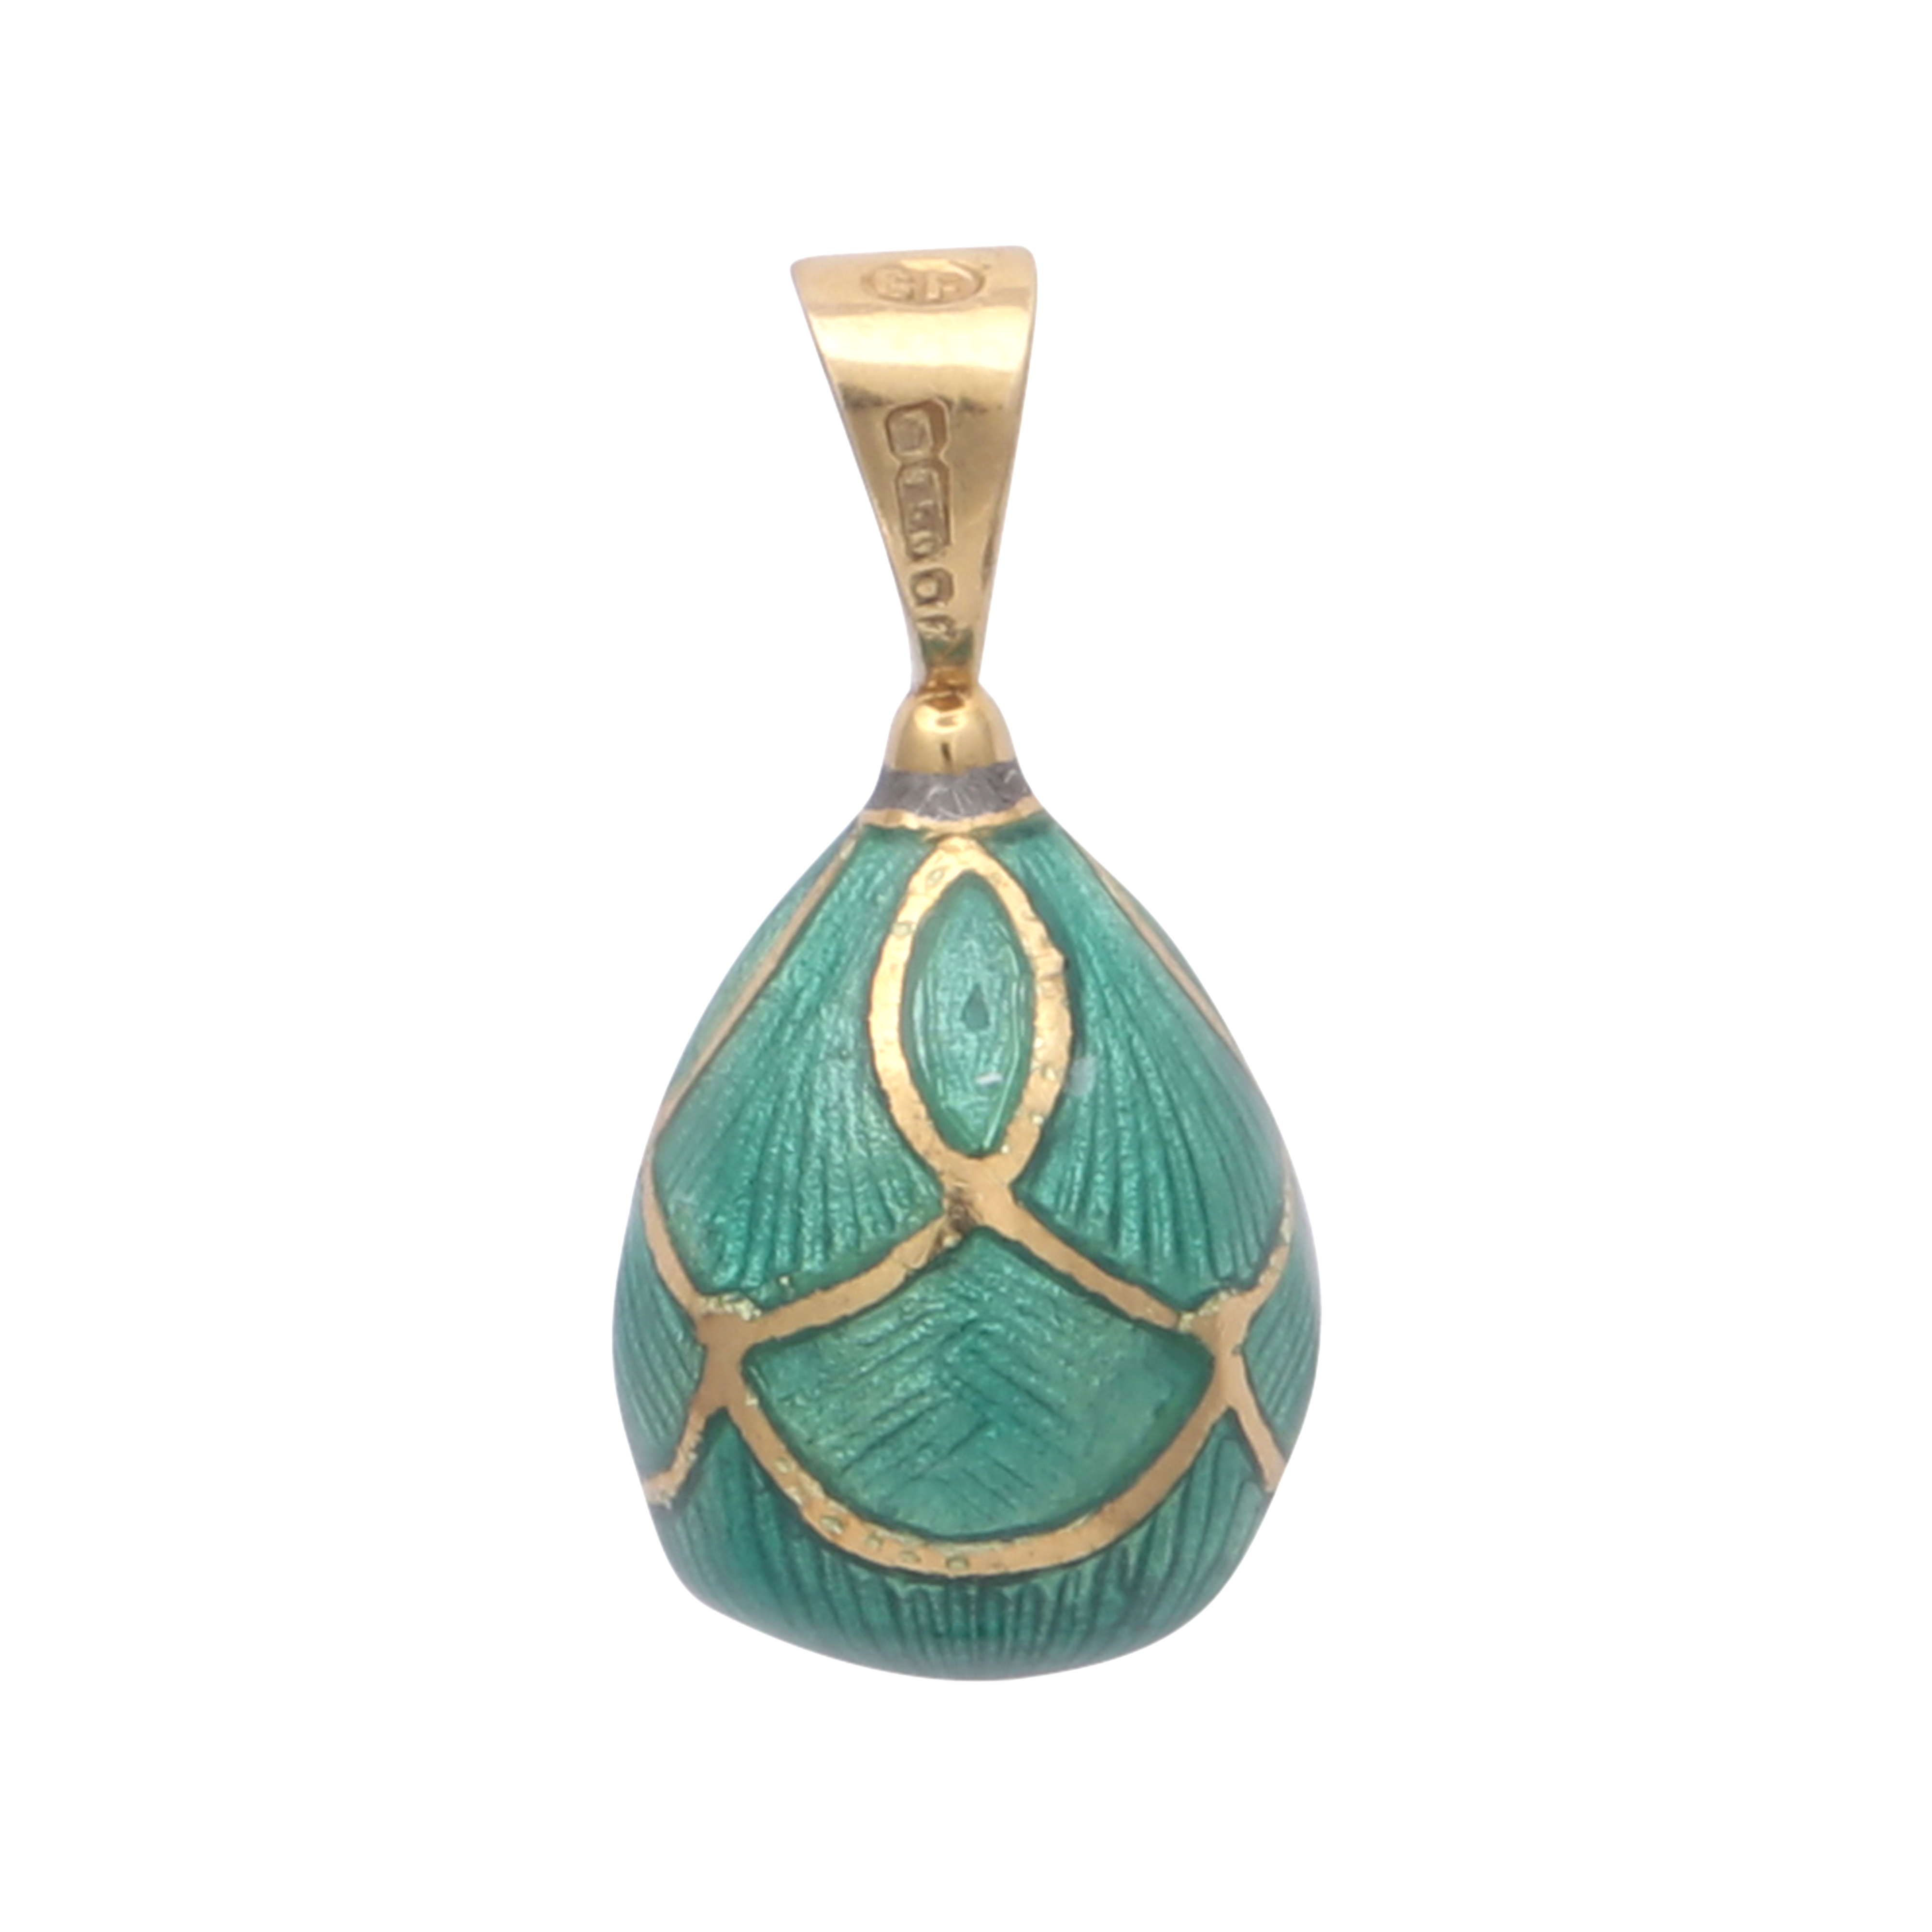 Los 167 - SARAH FABERGE A contemporary enamelled egg pendant in 18ct yellow gold by Sarah Faberge, designed as